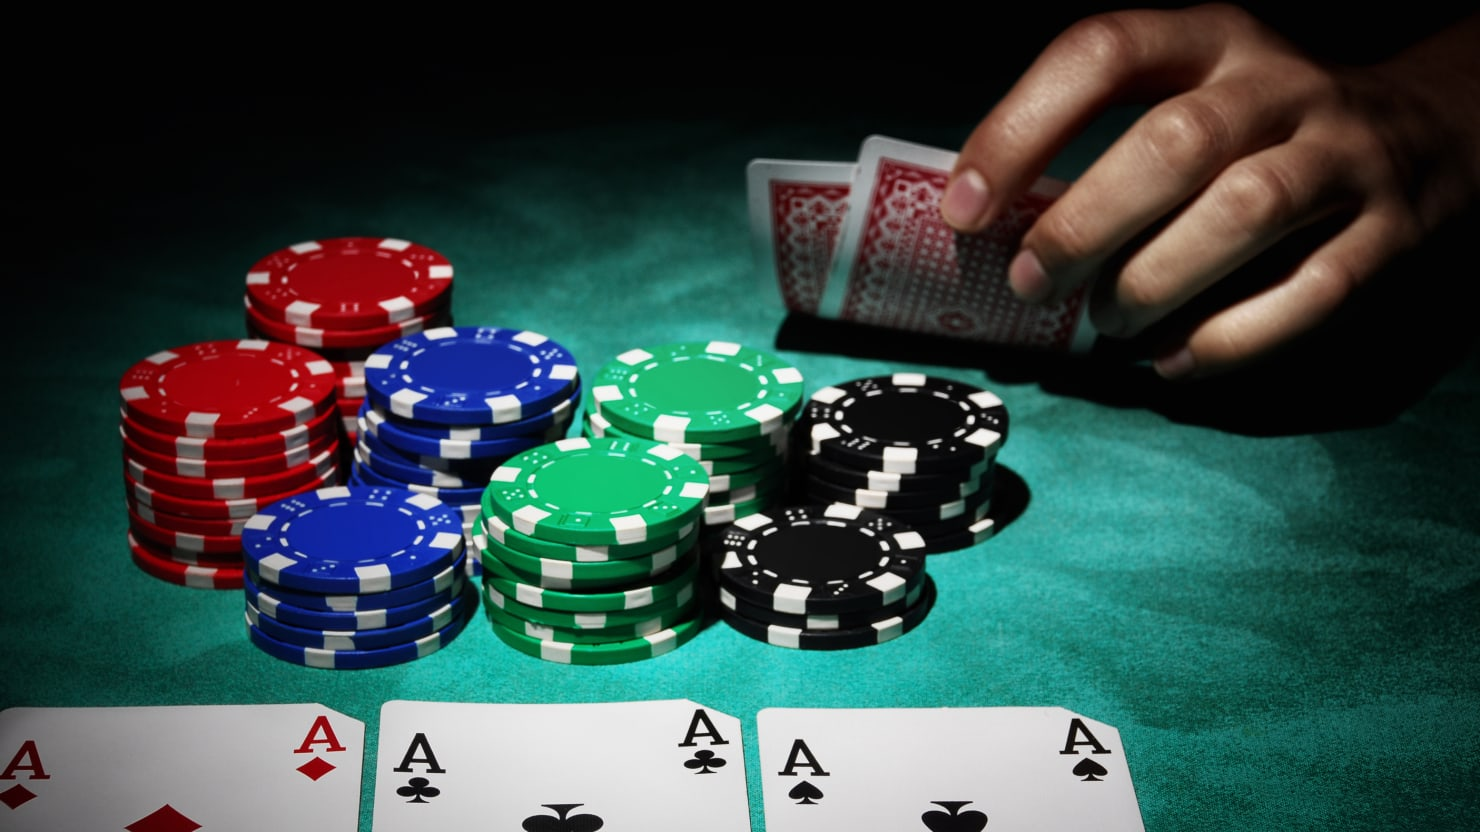 Benefits Of Online Casino Poker Sites